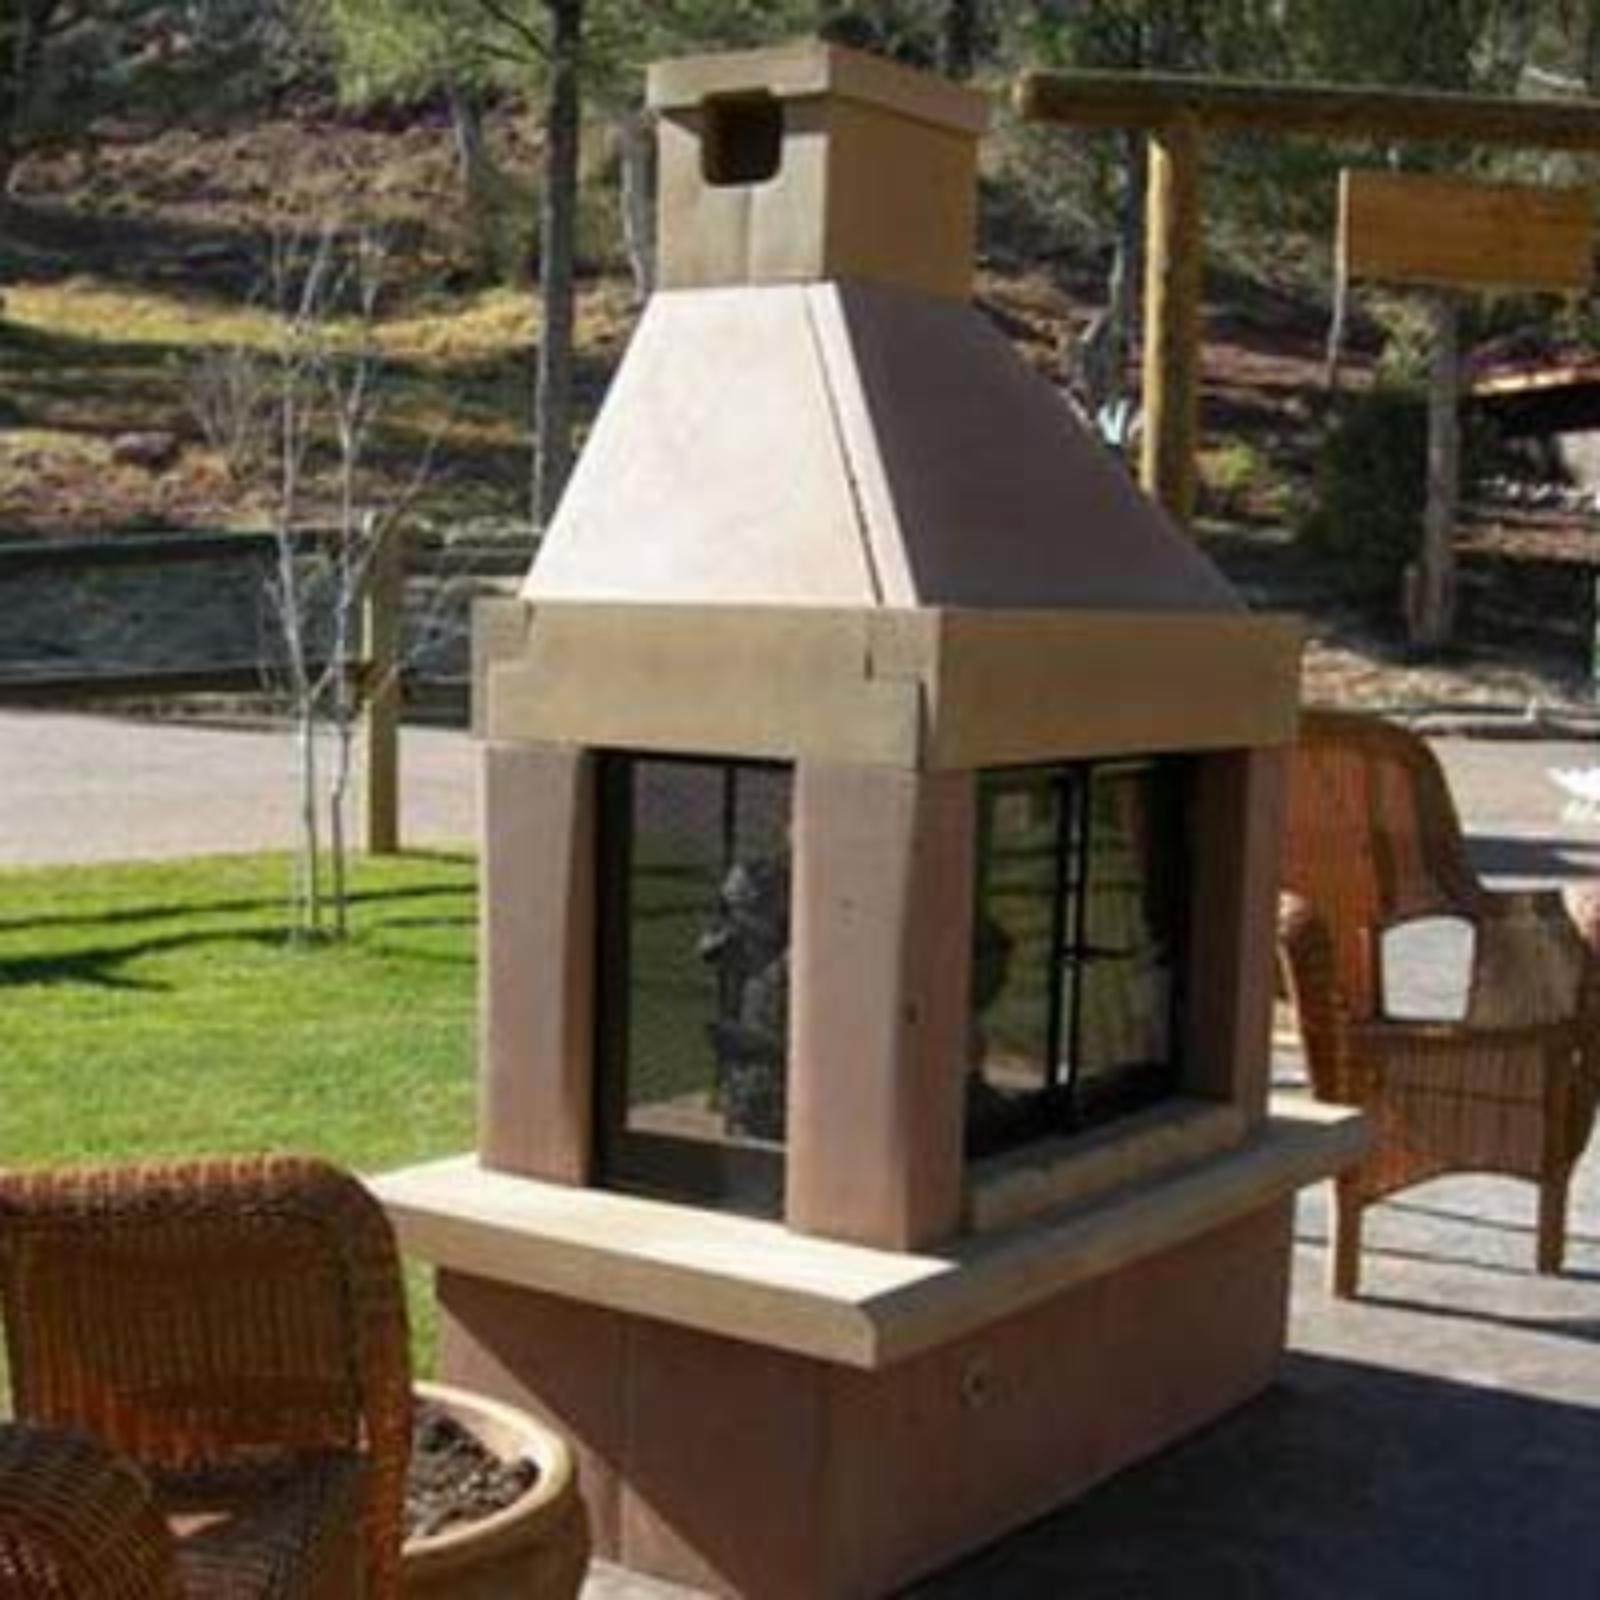 Mirage Stone See-Through Outdoor Fireplace with Gas Log Kit Sandstone - SEETHRUNGSANDSTANDARD